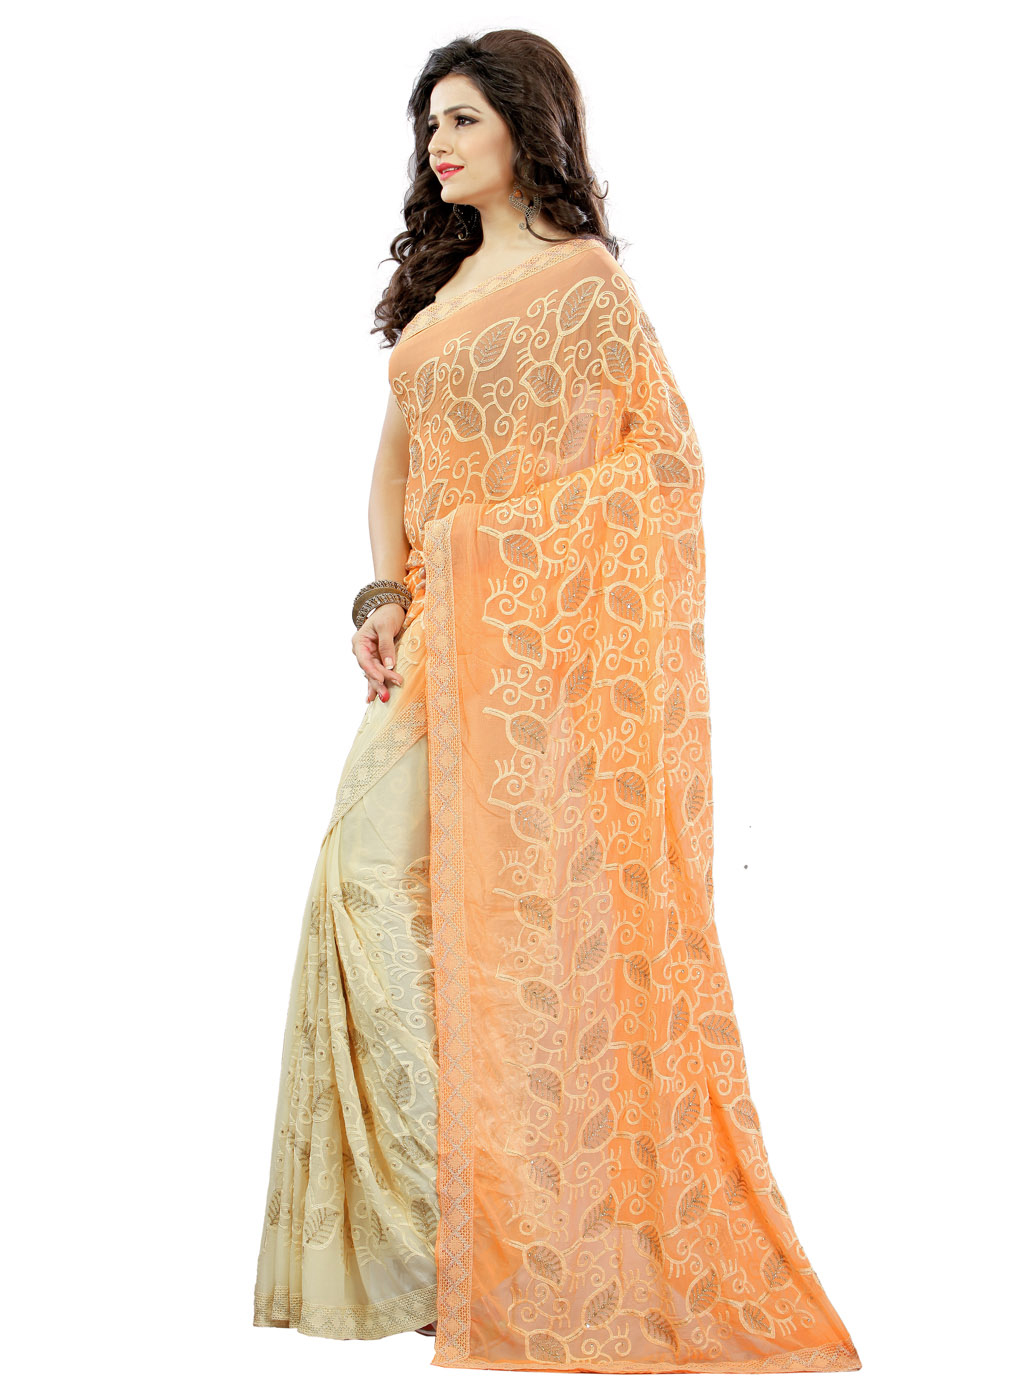 Classy Cream-Orange Colored Embroidered Party Wear Chiffon Saree